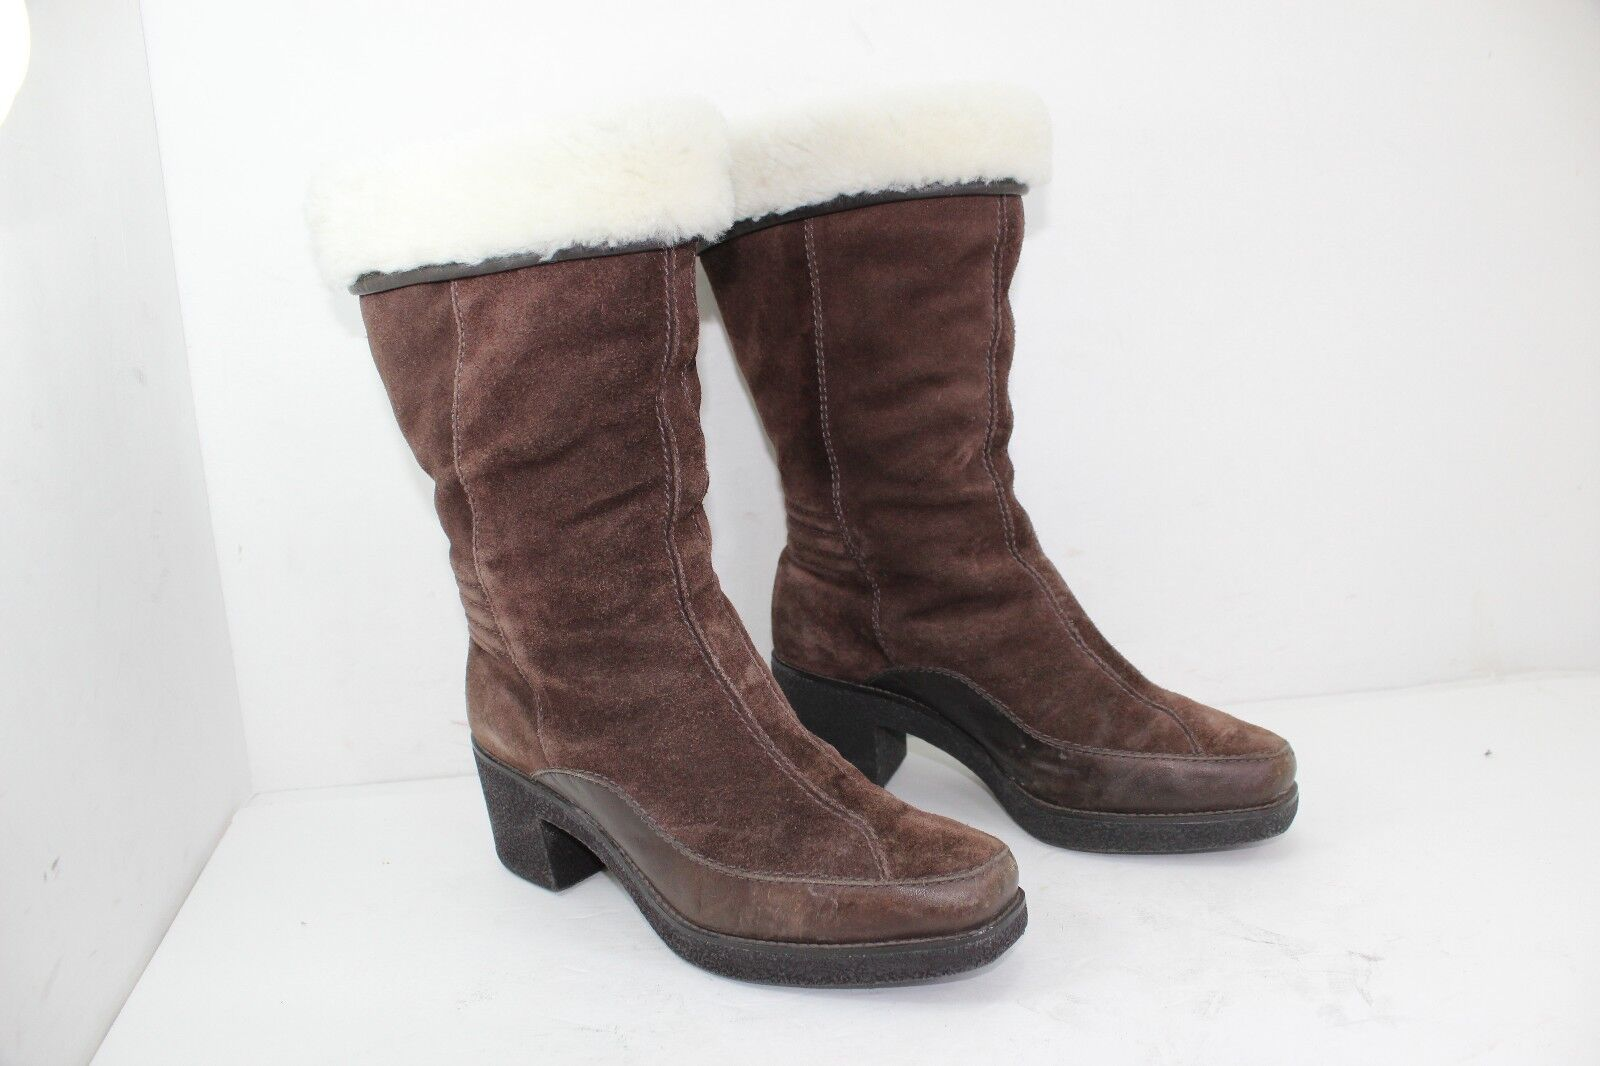 COLE HAAN FUR BOOTS SIZE 6 B BROWNS IN GREAT CONDITION